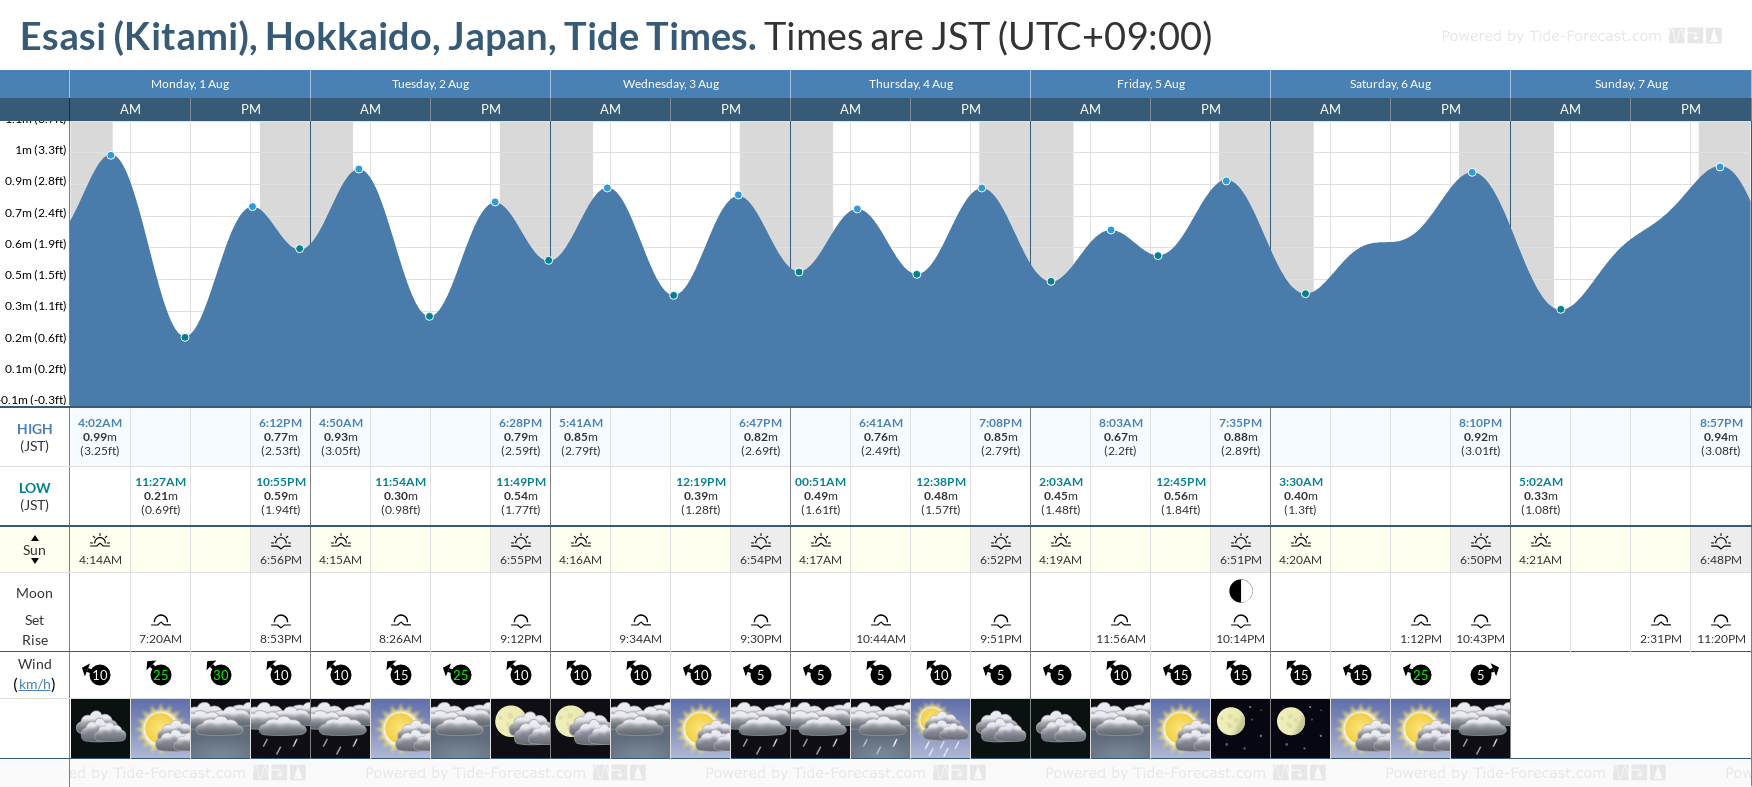 Esasi (Kitami), Hokkaido, Japan Tide Chart including high and low tide tide times for the next 7 days